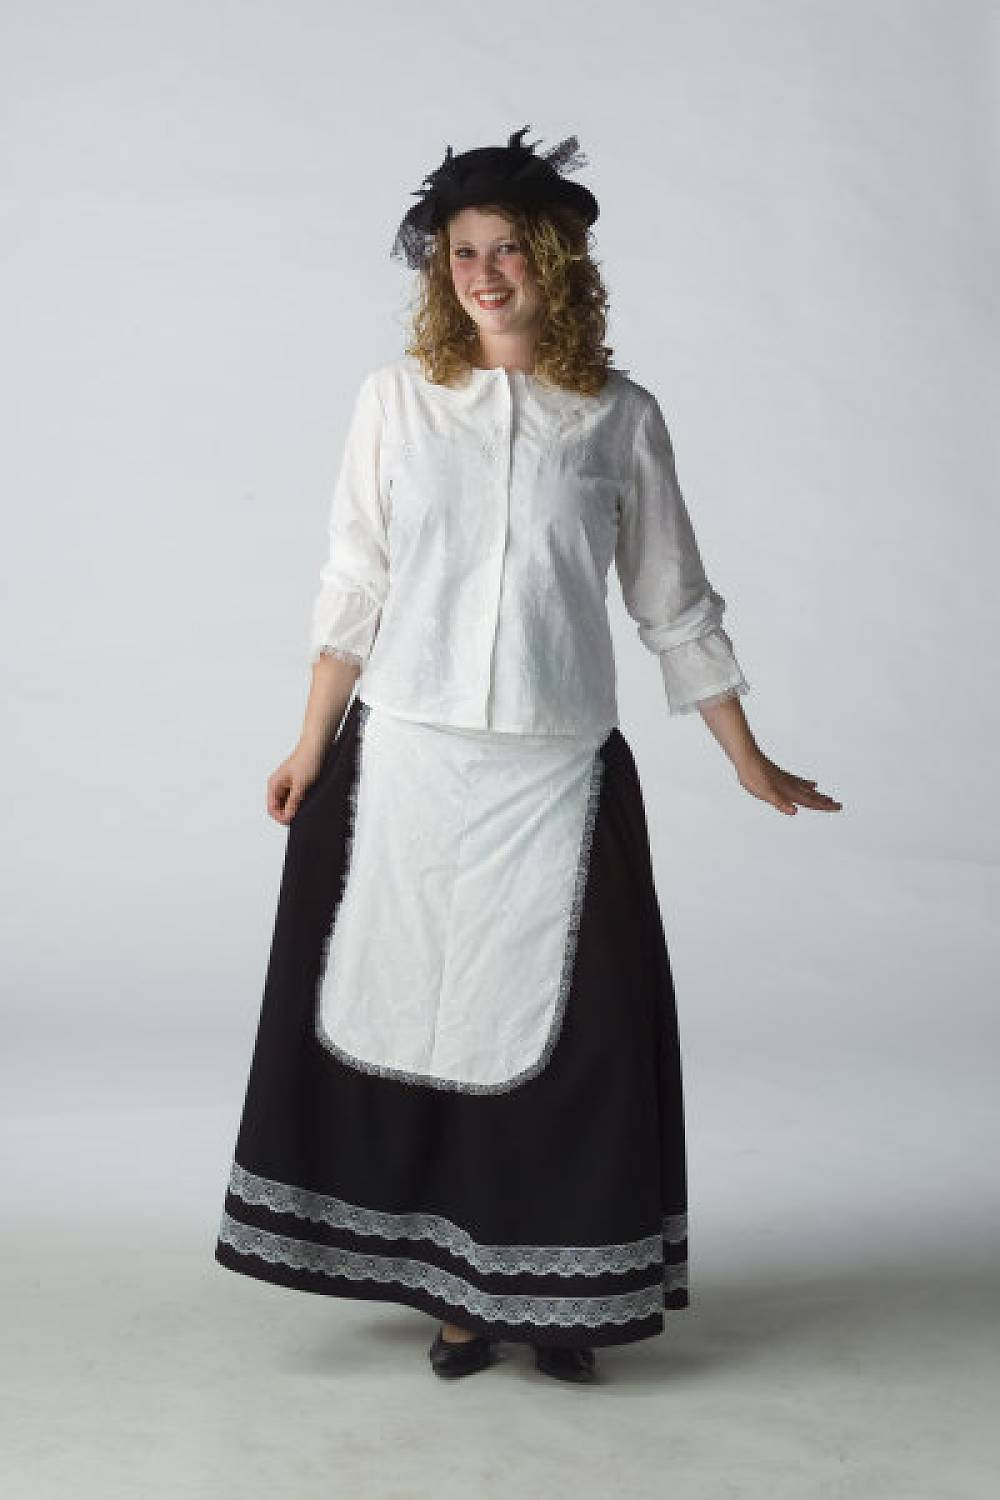 Carnivalcostume Peasant woman medieval  sc 1 st  Fancy dress & Carnivalcostume Peasant woman medieval - Fancy dress